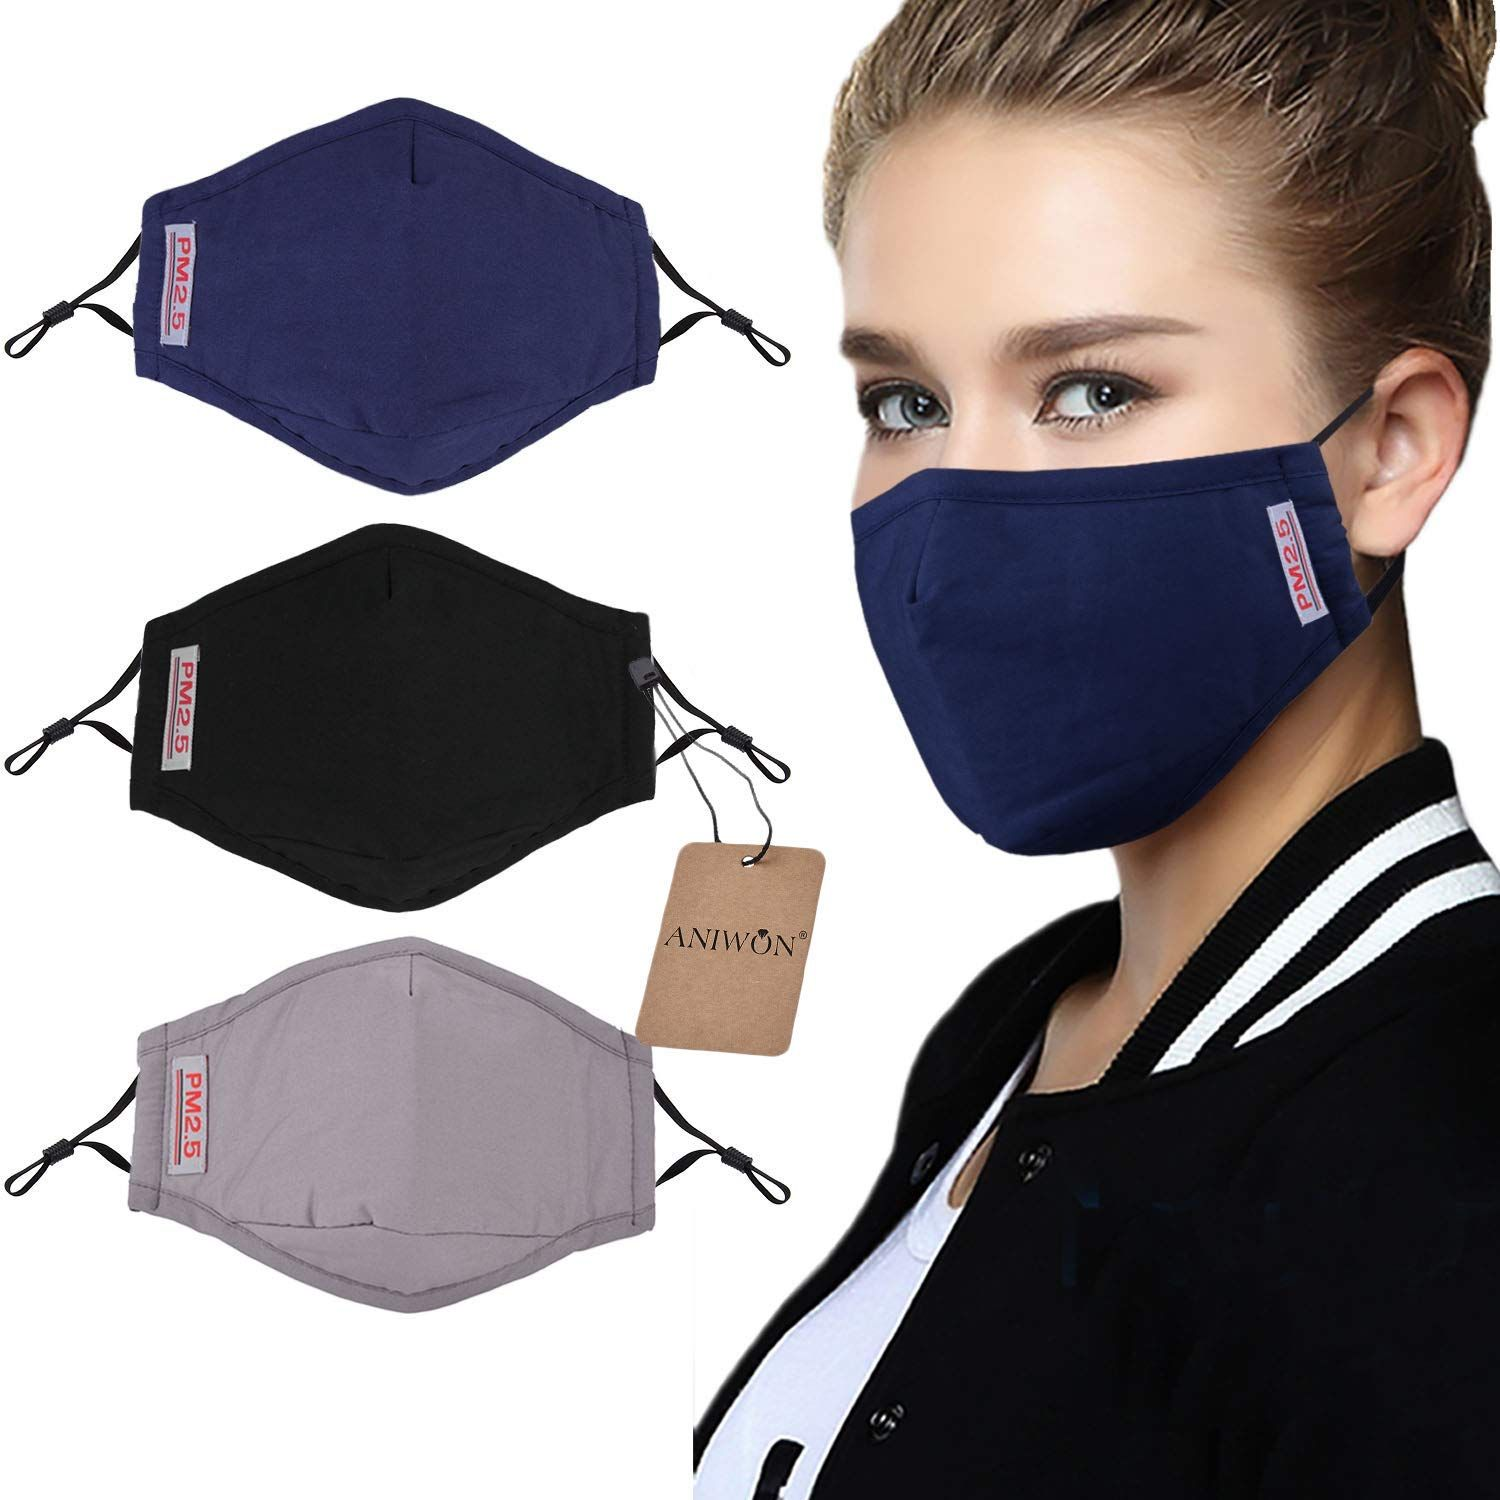 Dust Mask,Aniwon 3 Pack Anti Dust Pollution Mask with 6